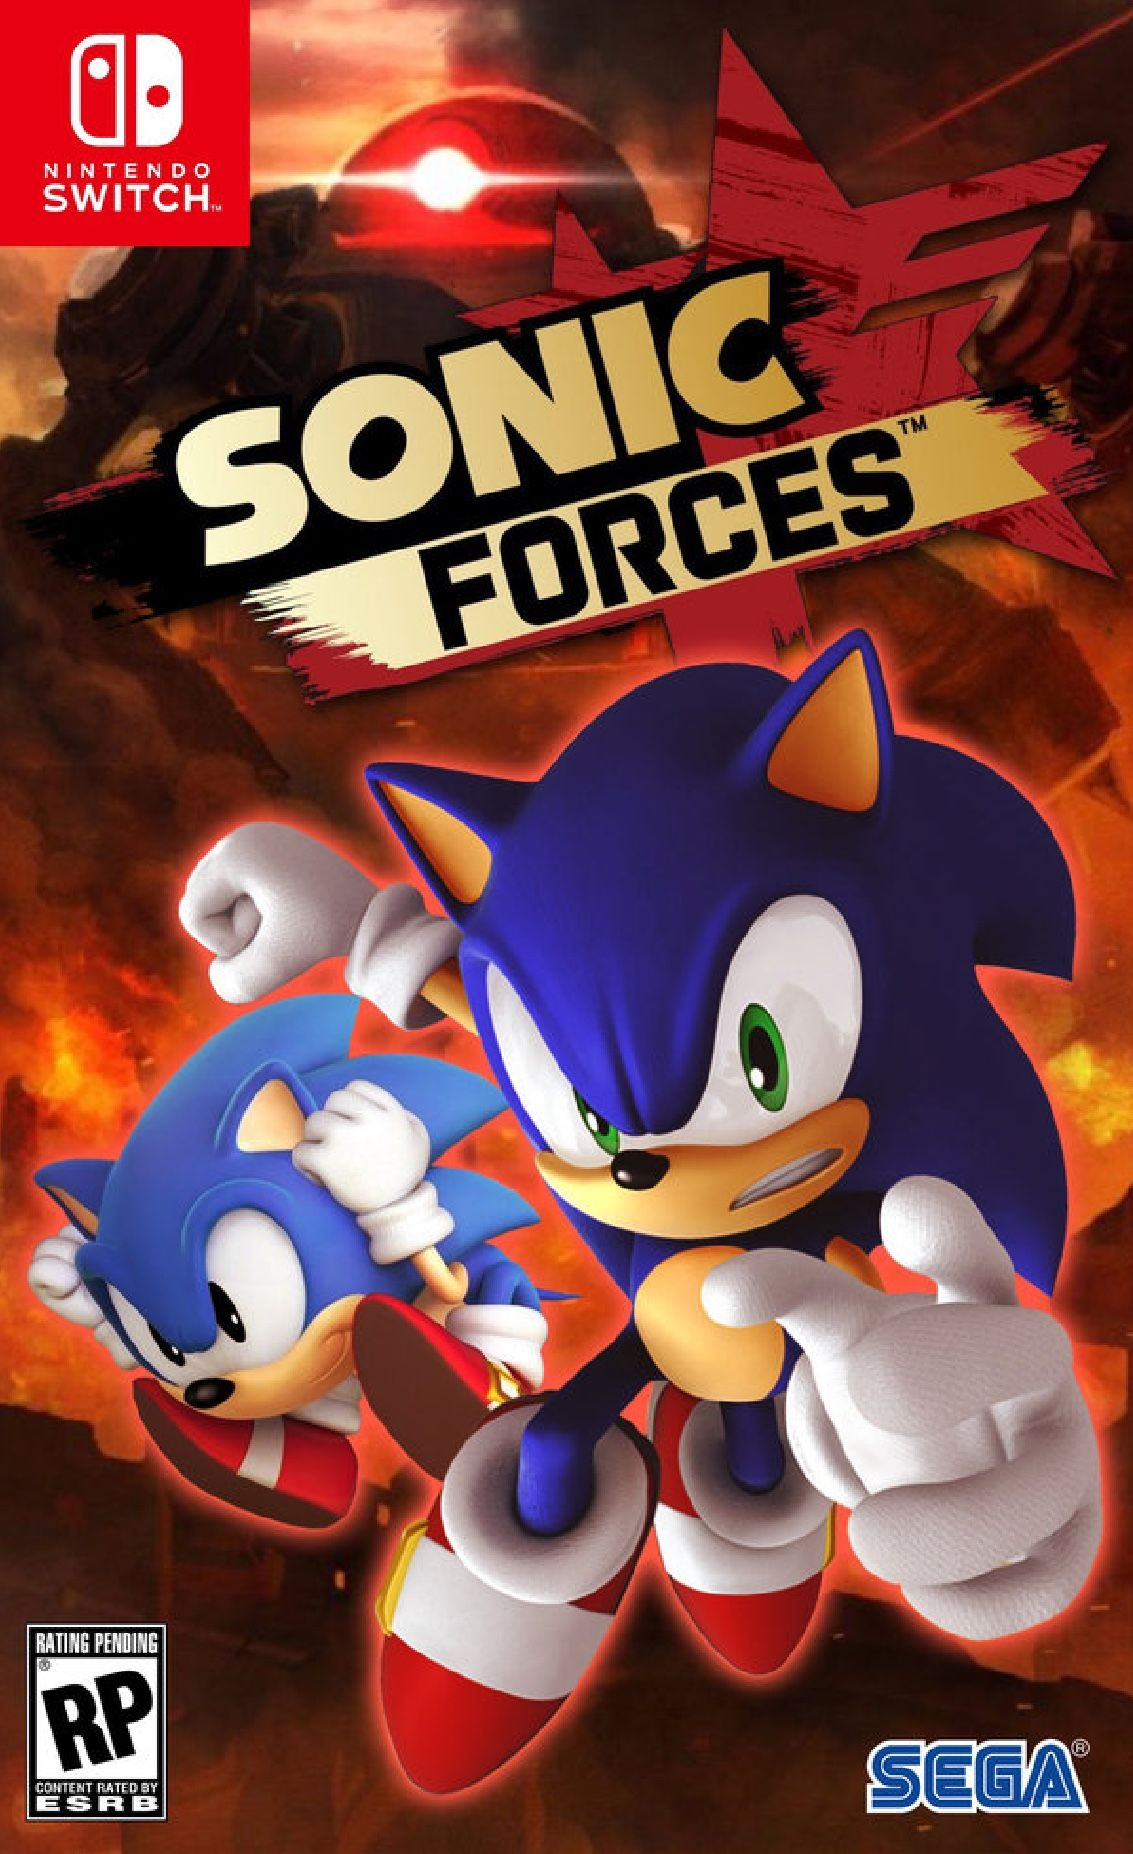 sonic forces nintendo switch new video game consoles pinterest nintendo switch nintendo. Black Bedroom Furniture Sets. Home Design Ideas